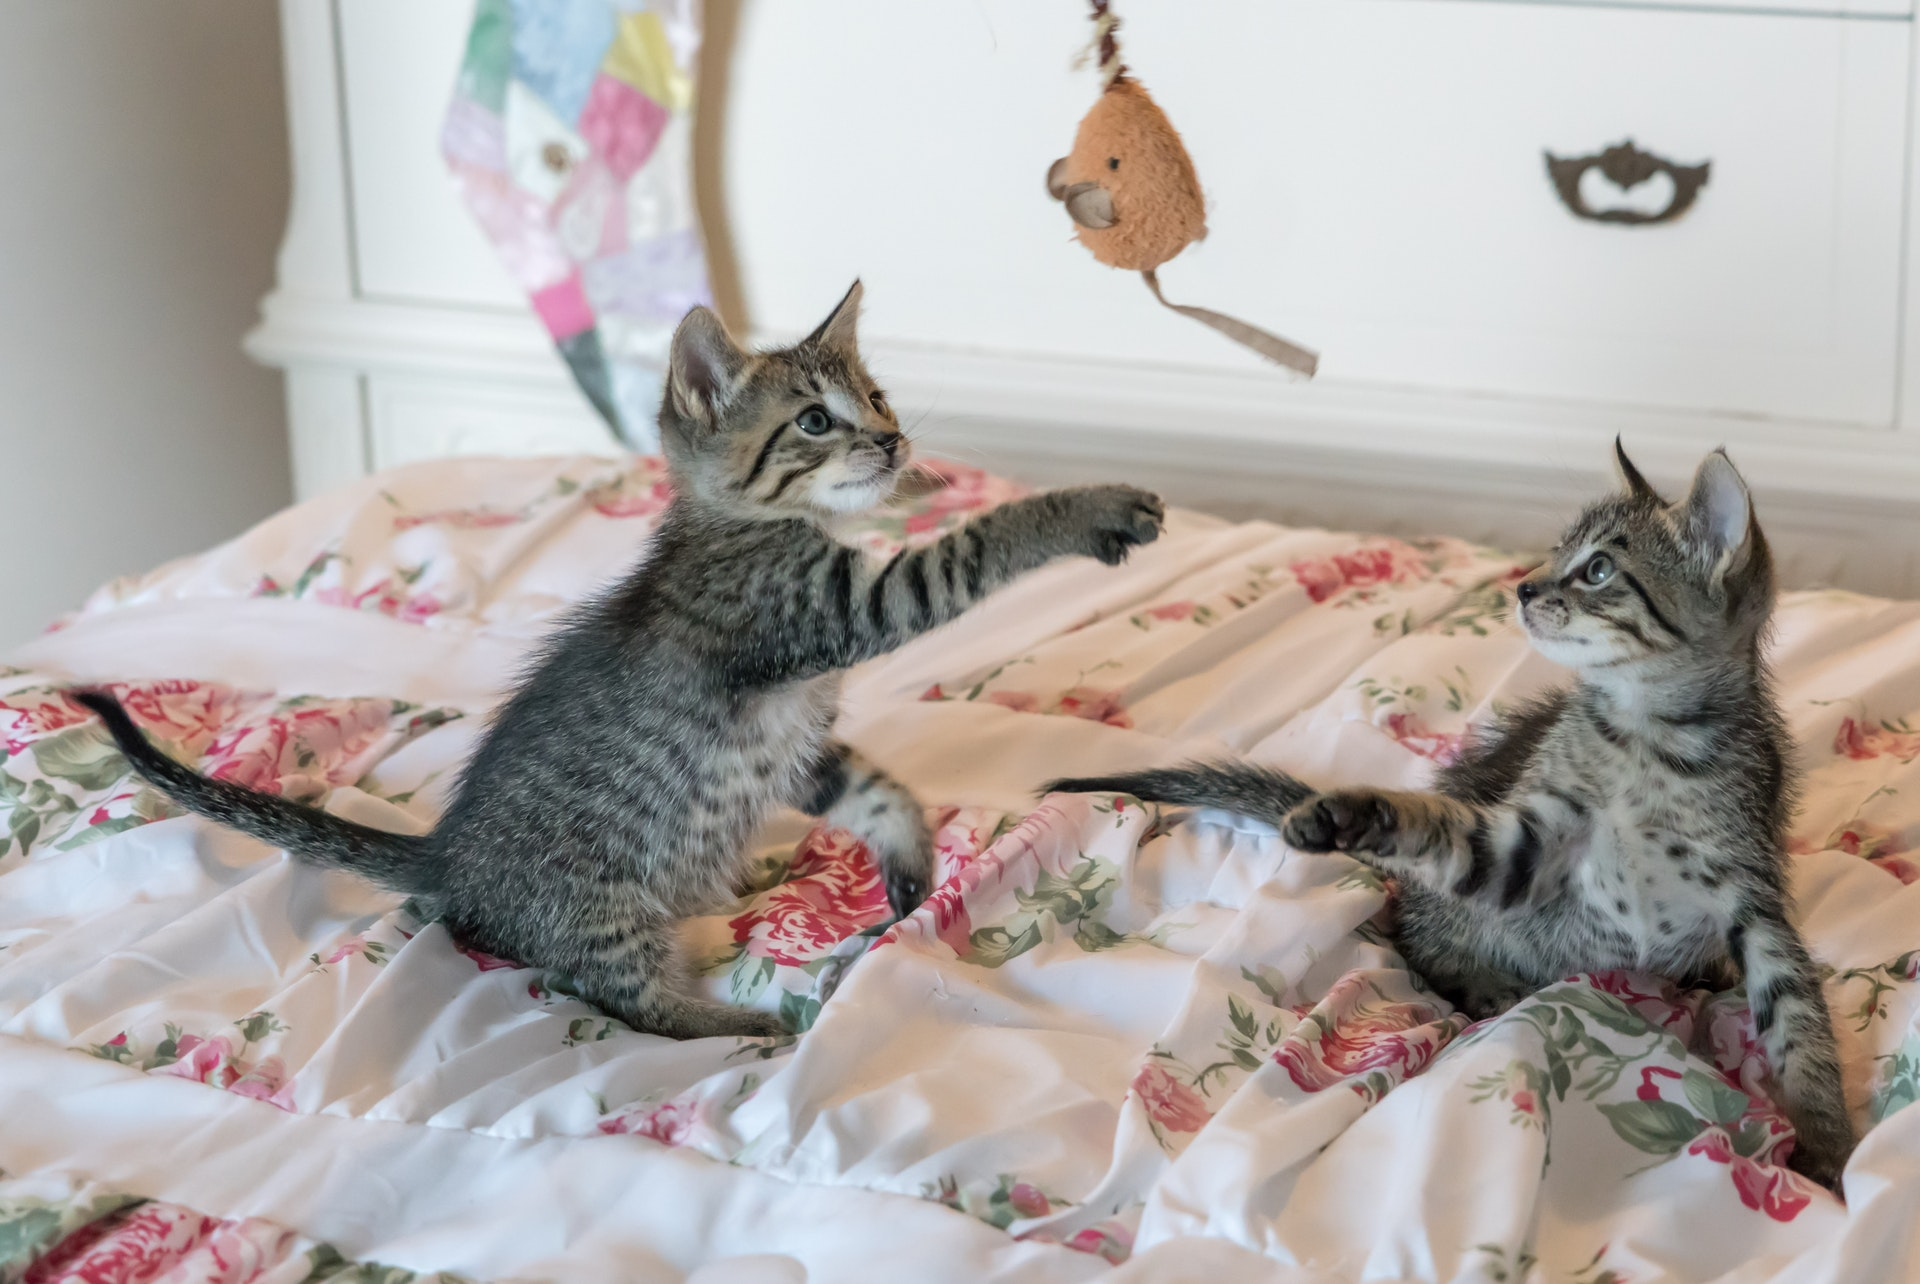 tabby-kittens-on-floral-comforter-160755.jpg